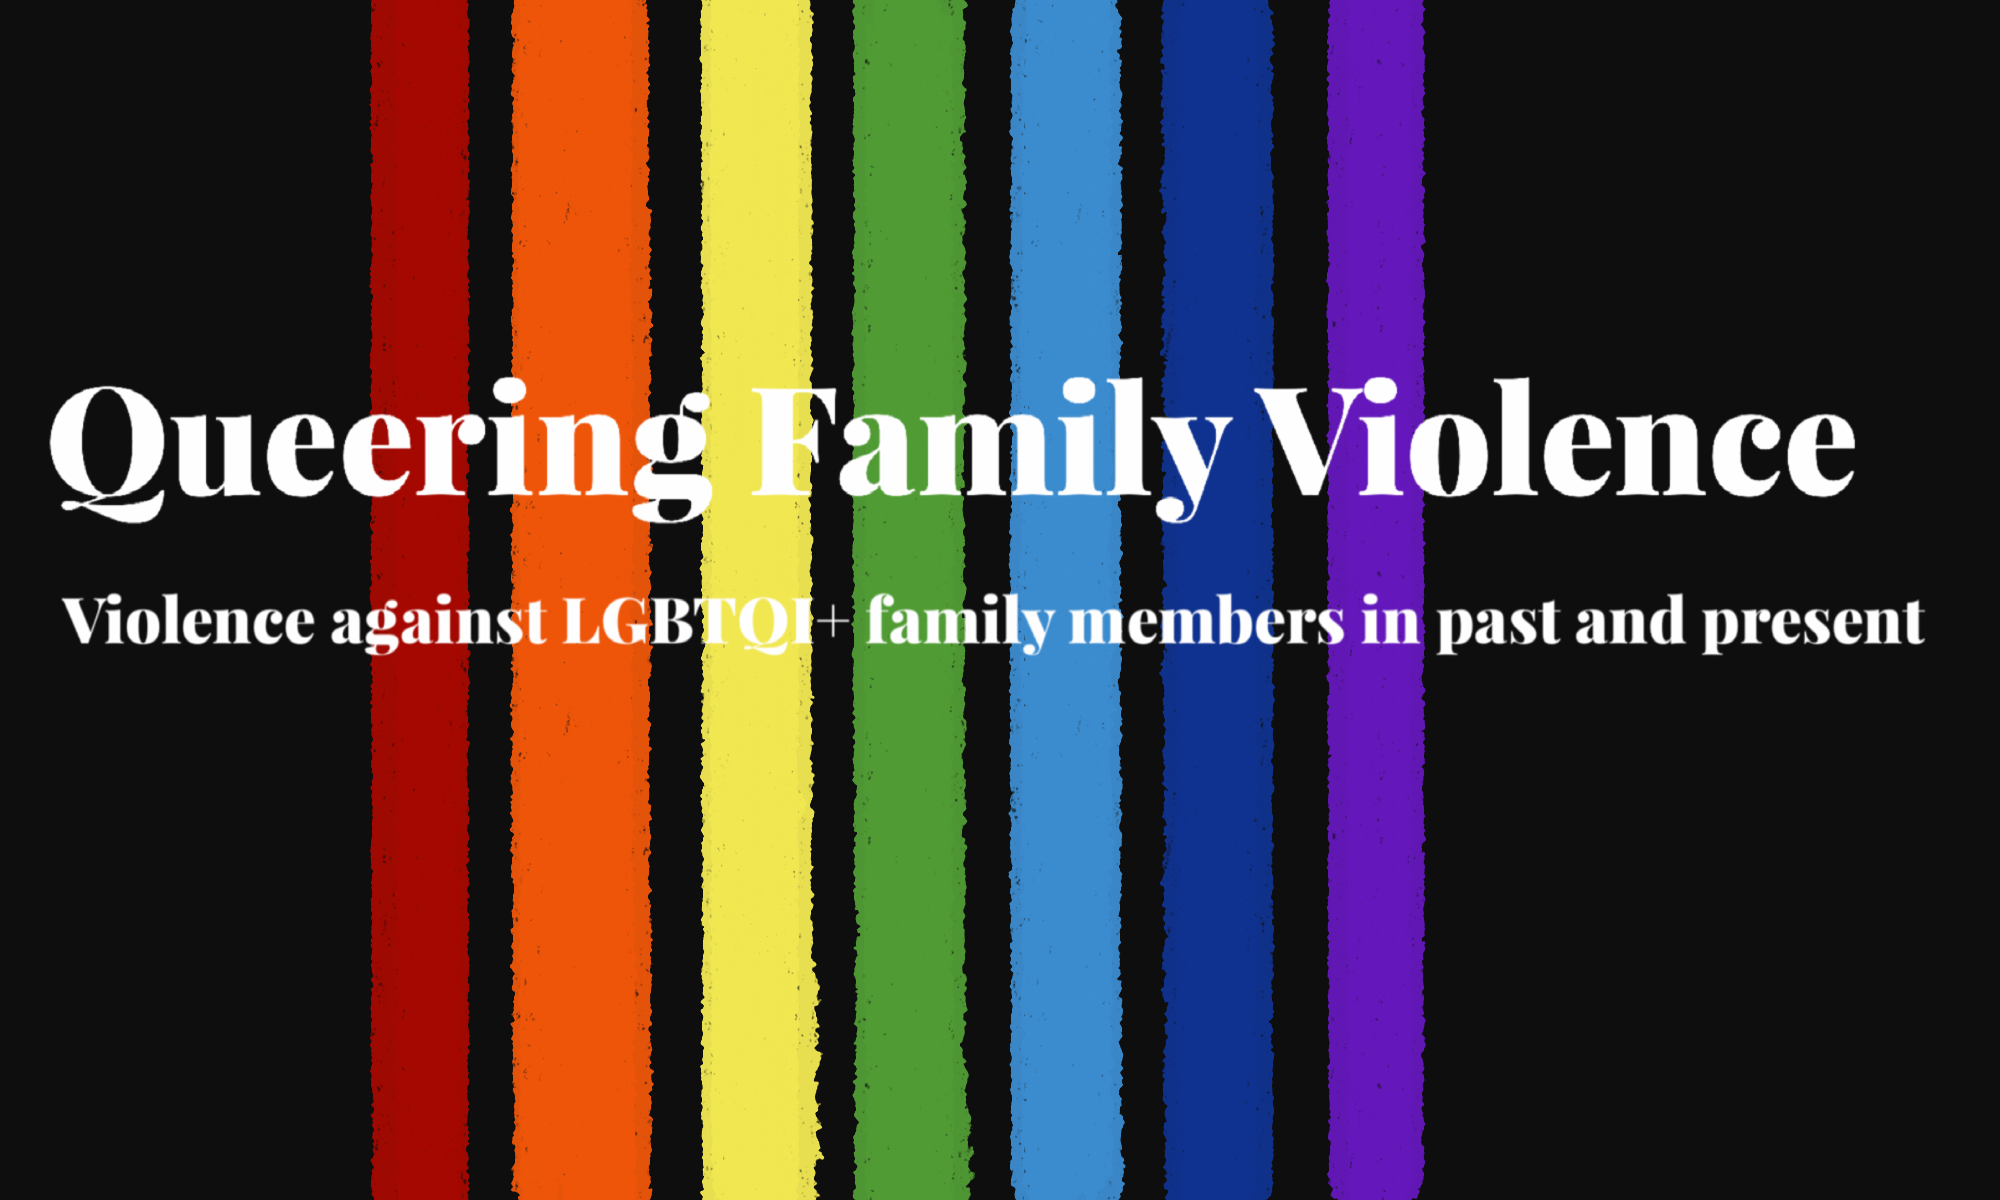 Queering Family Violence